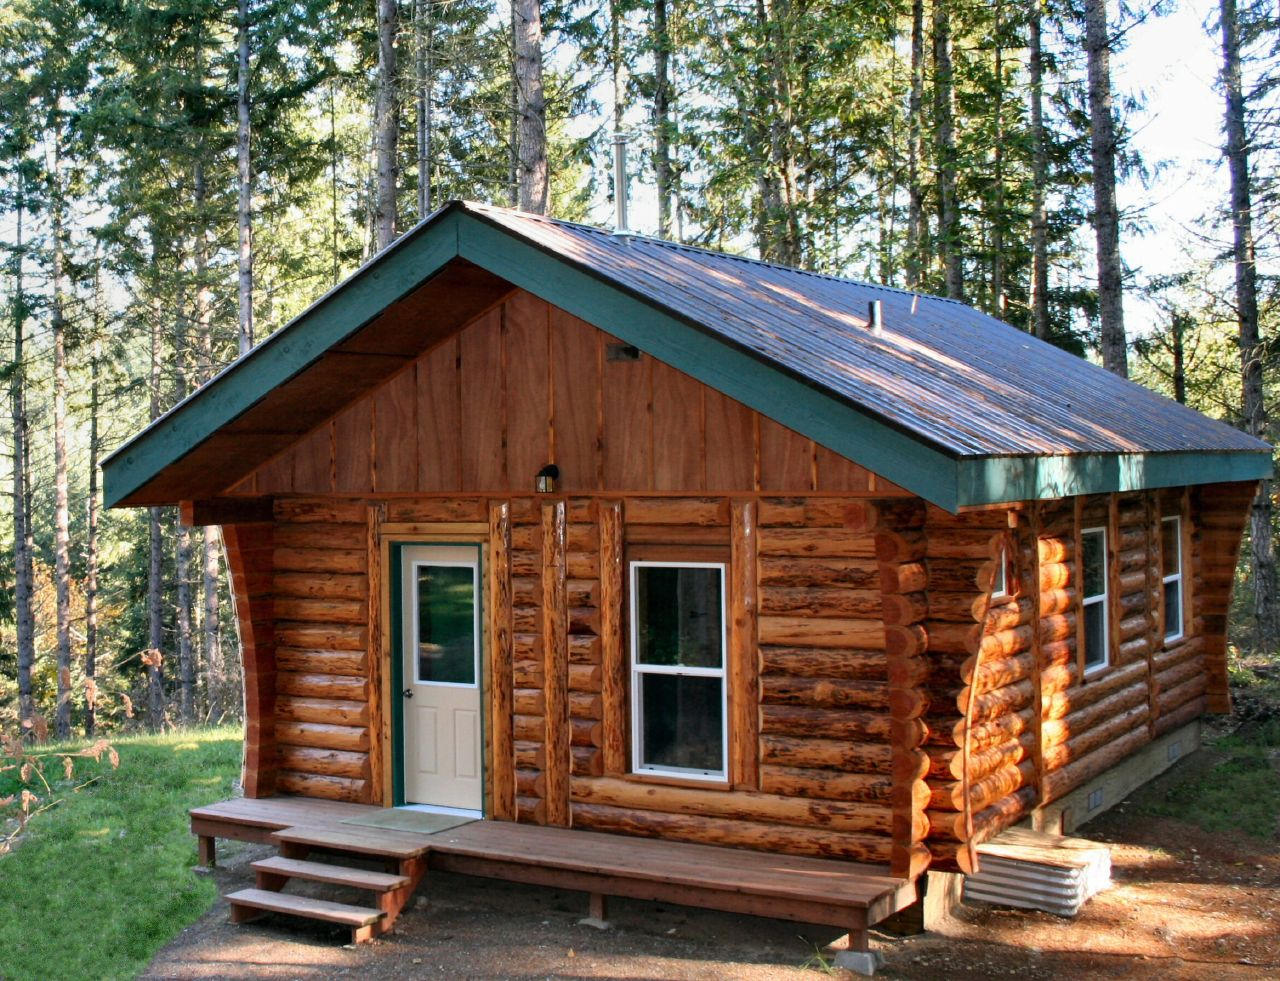 30 photos of log house or wood house style - Small wood homes ...